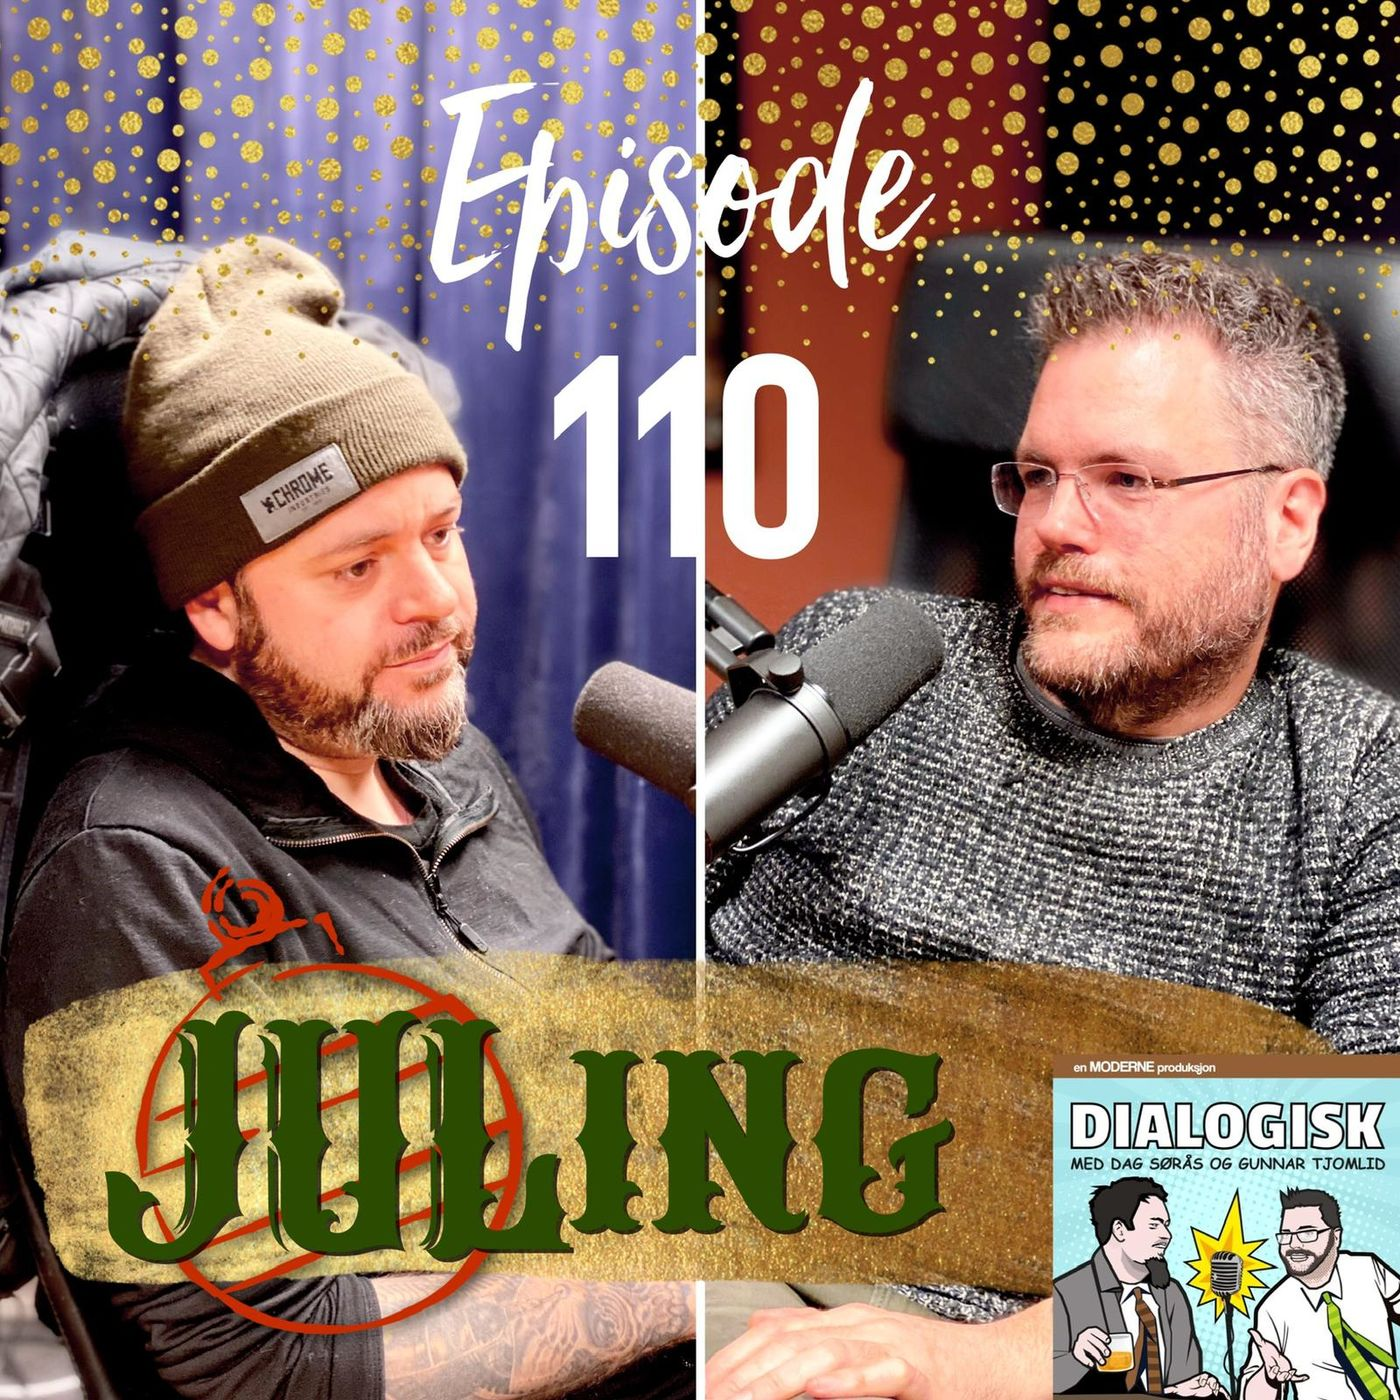 Episode 110: Juling